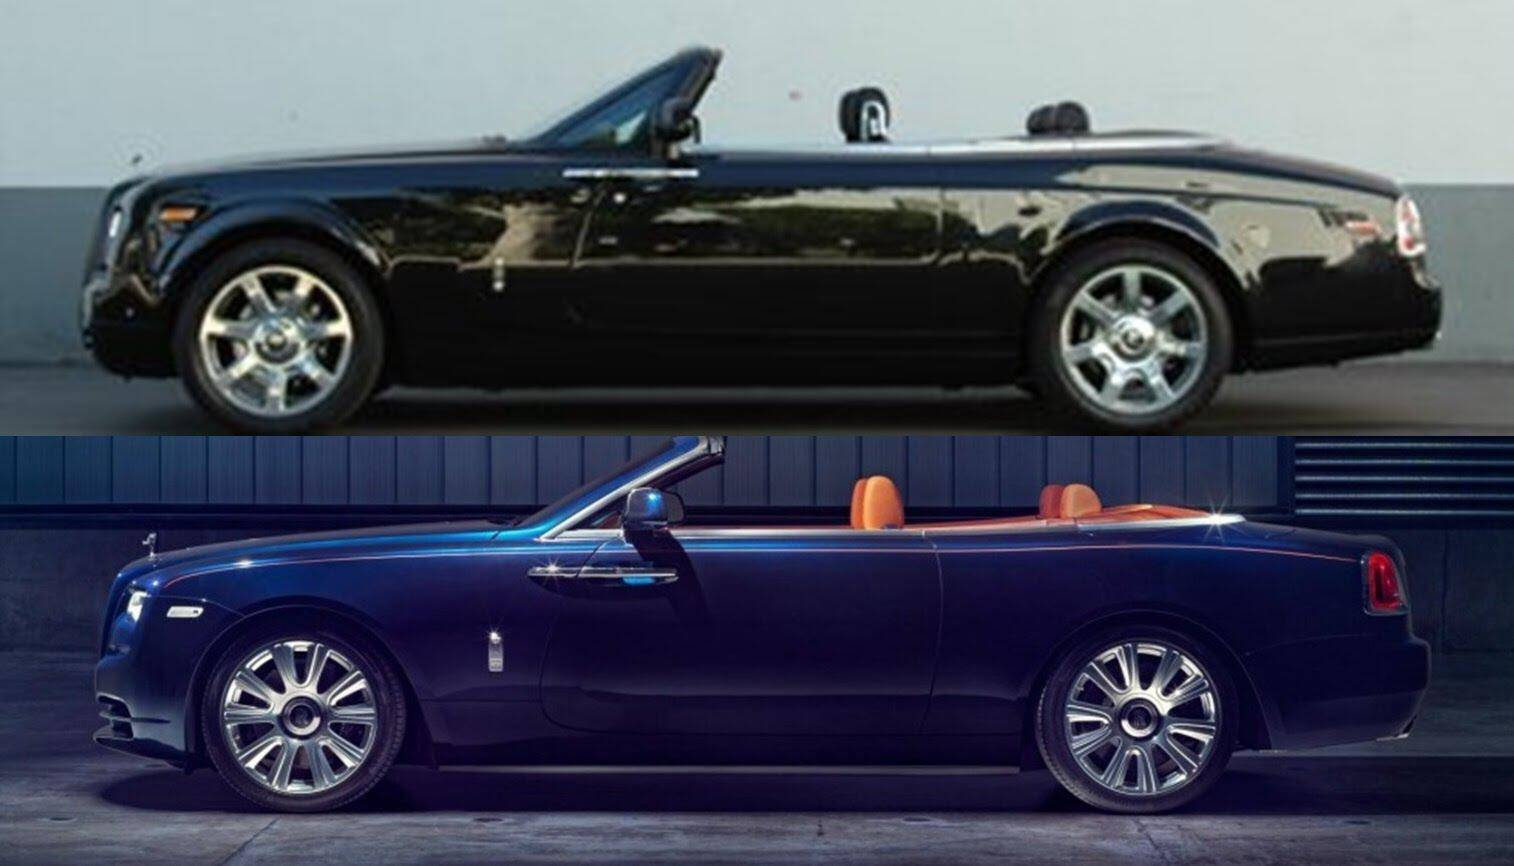 2016 Rolls Royce Phantom Drophead Coupe Vs 2016 Rolls